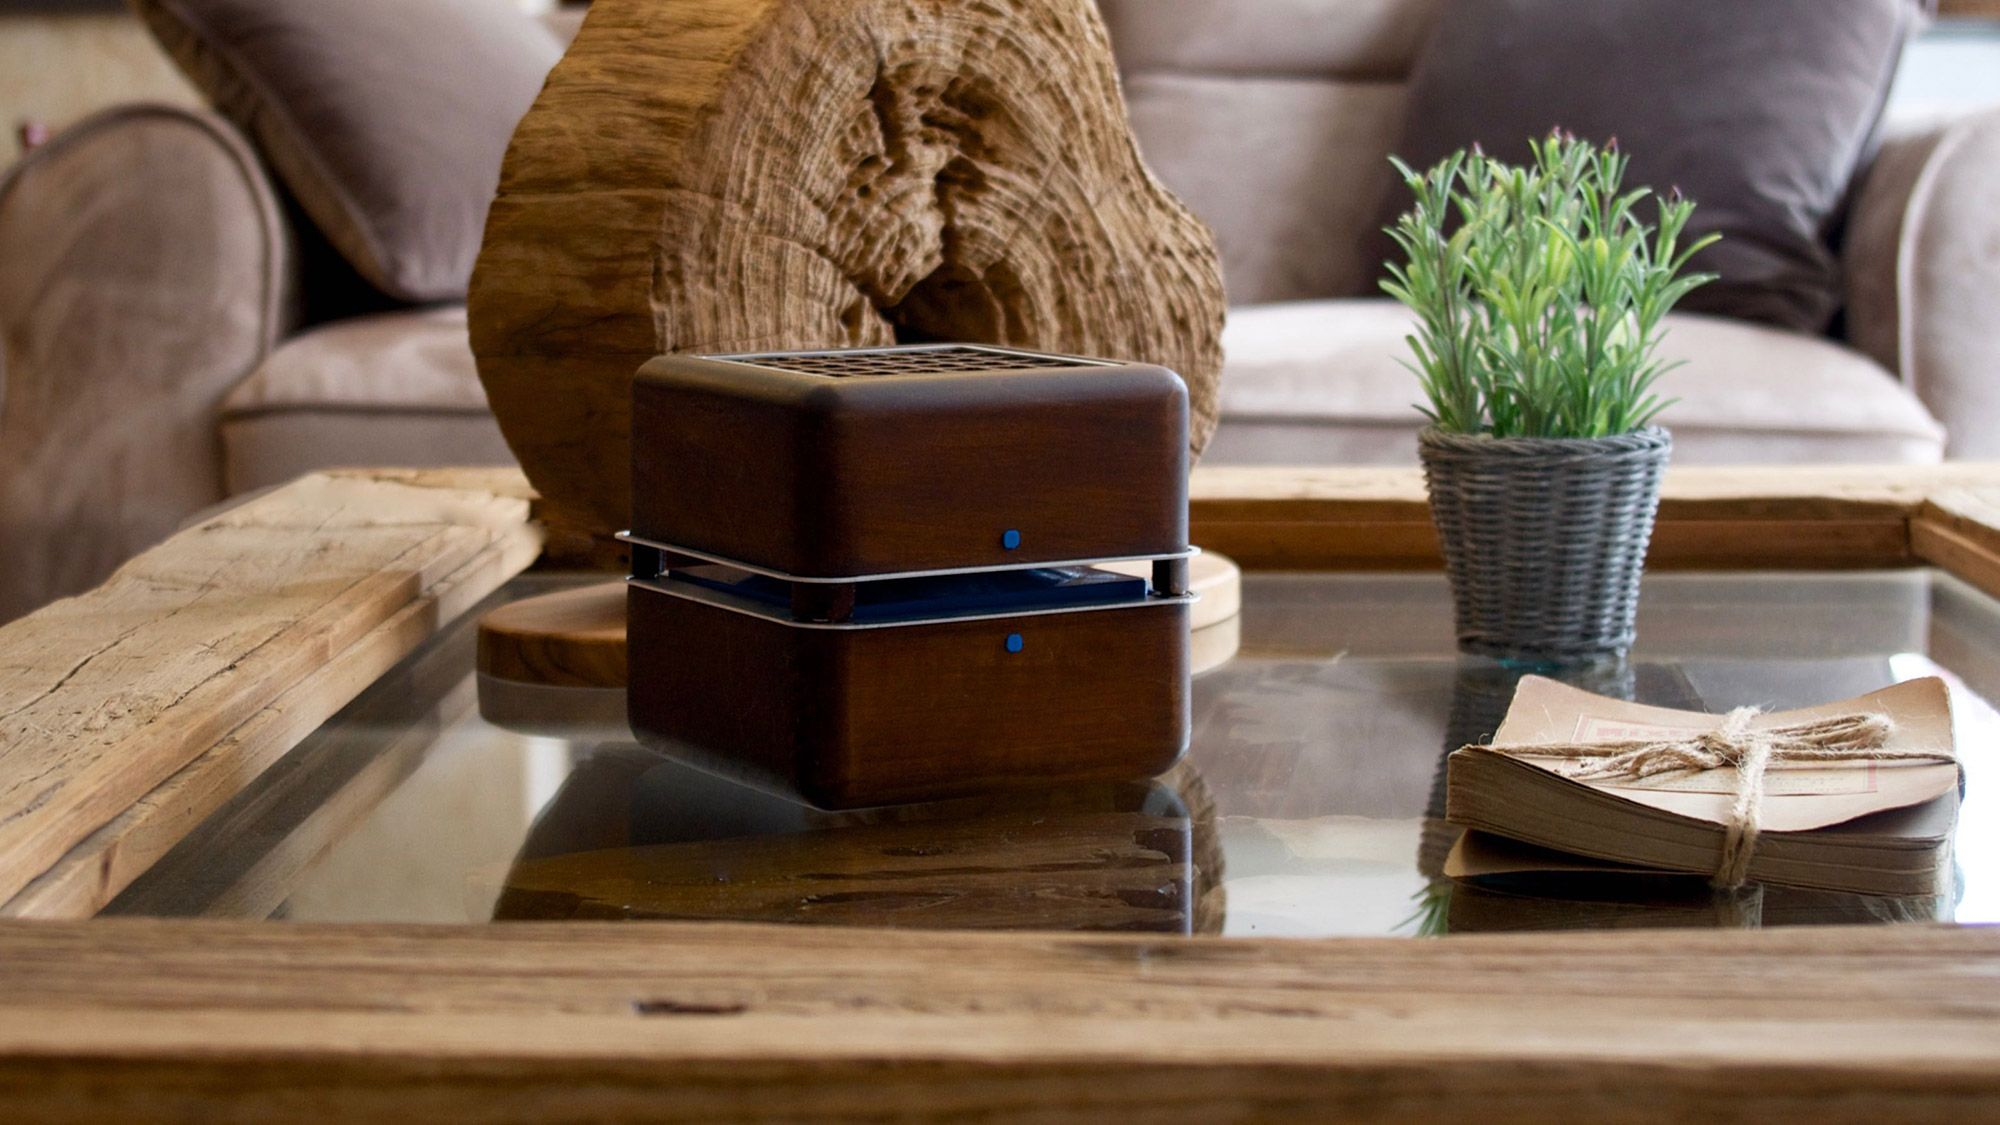 Geizeer Ice Cooling System Freshersmag Portable Air Conditioner Stylish Coffee Table Wooden Cubes